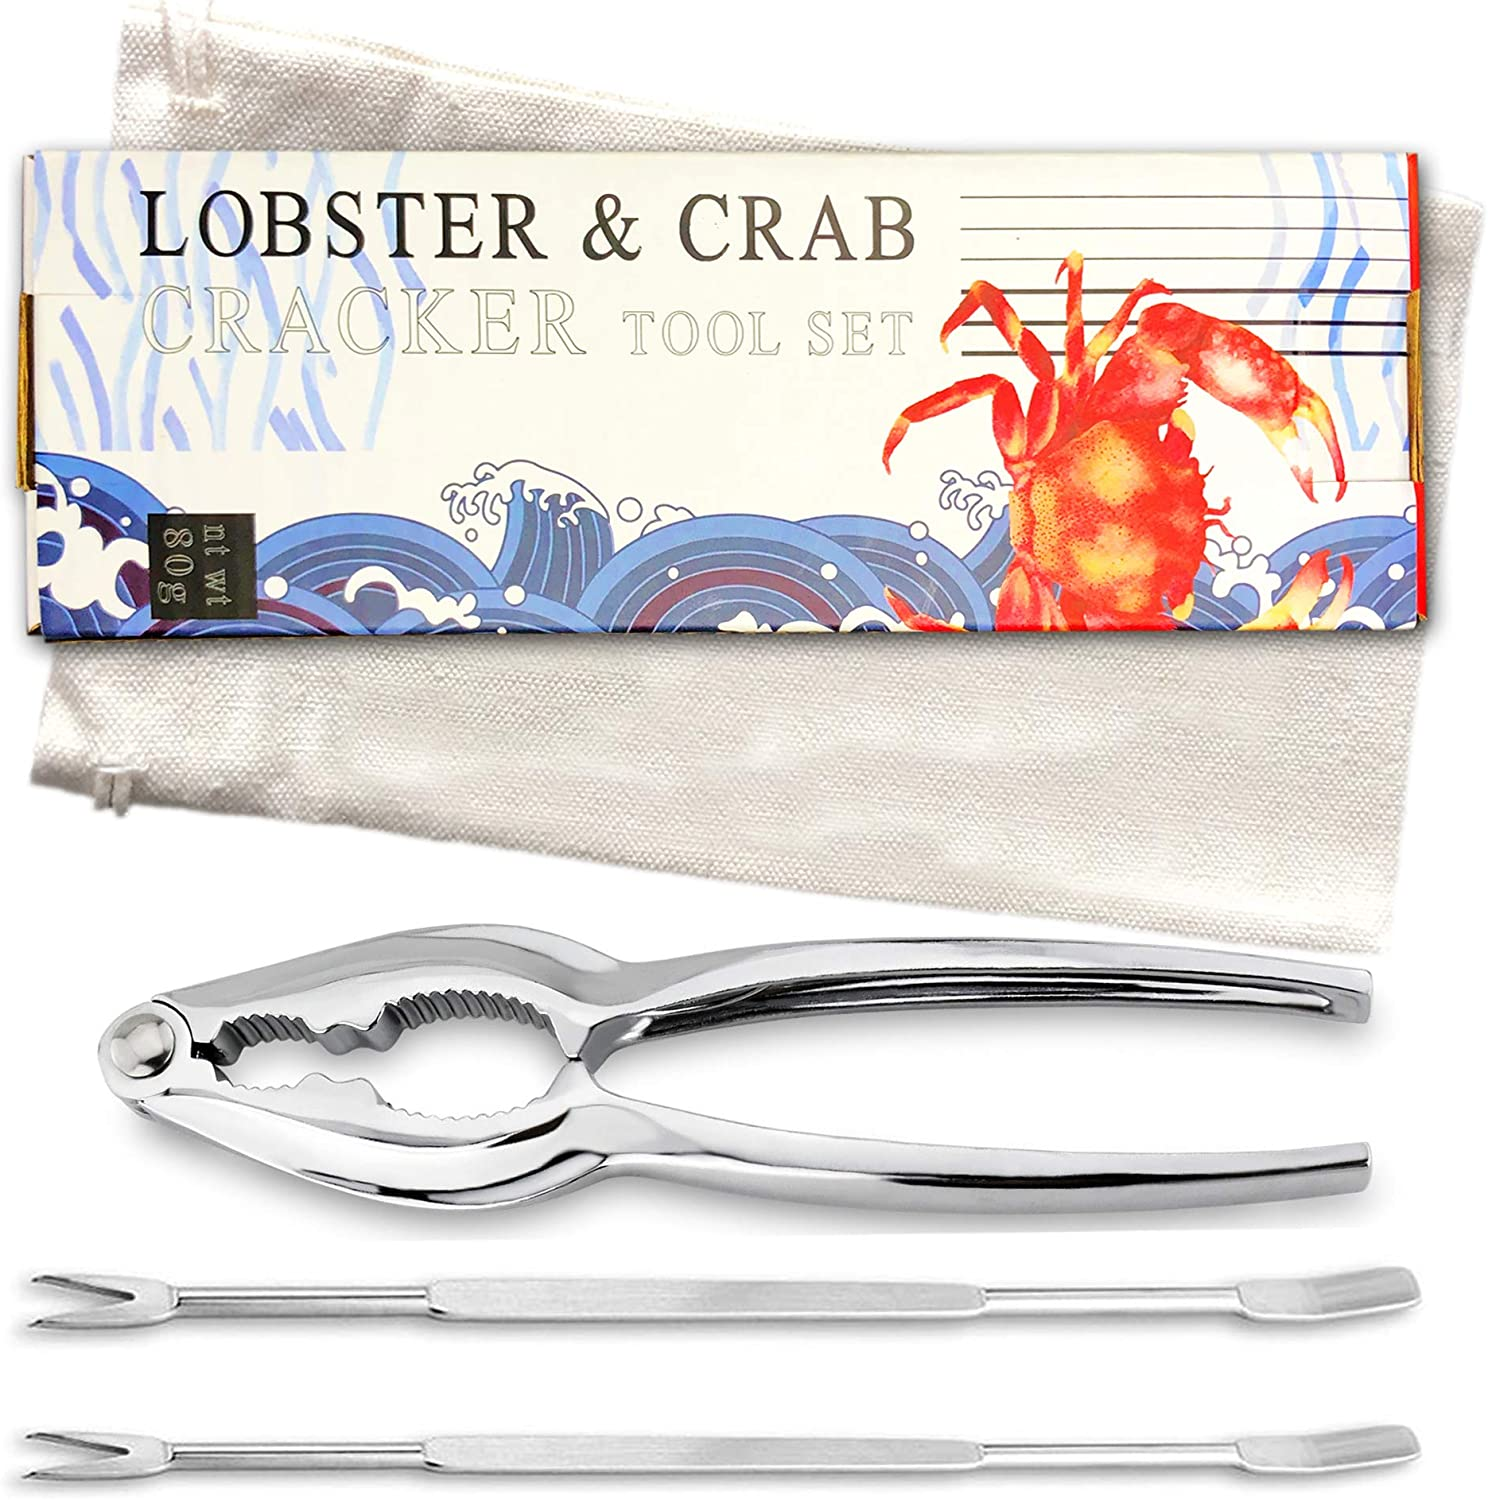 Lobster & Crab Seafood Cracker and Pick Tool Set |10 Pcs Includes 4 Crab Crackers, 2 Handy Canvas Bags & 4 Crab Leg Fork Picks: Kitchen & Dining